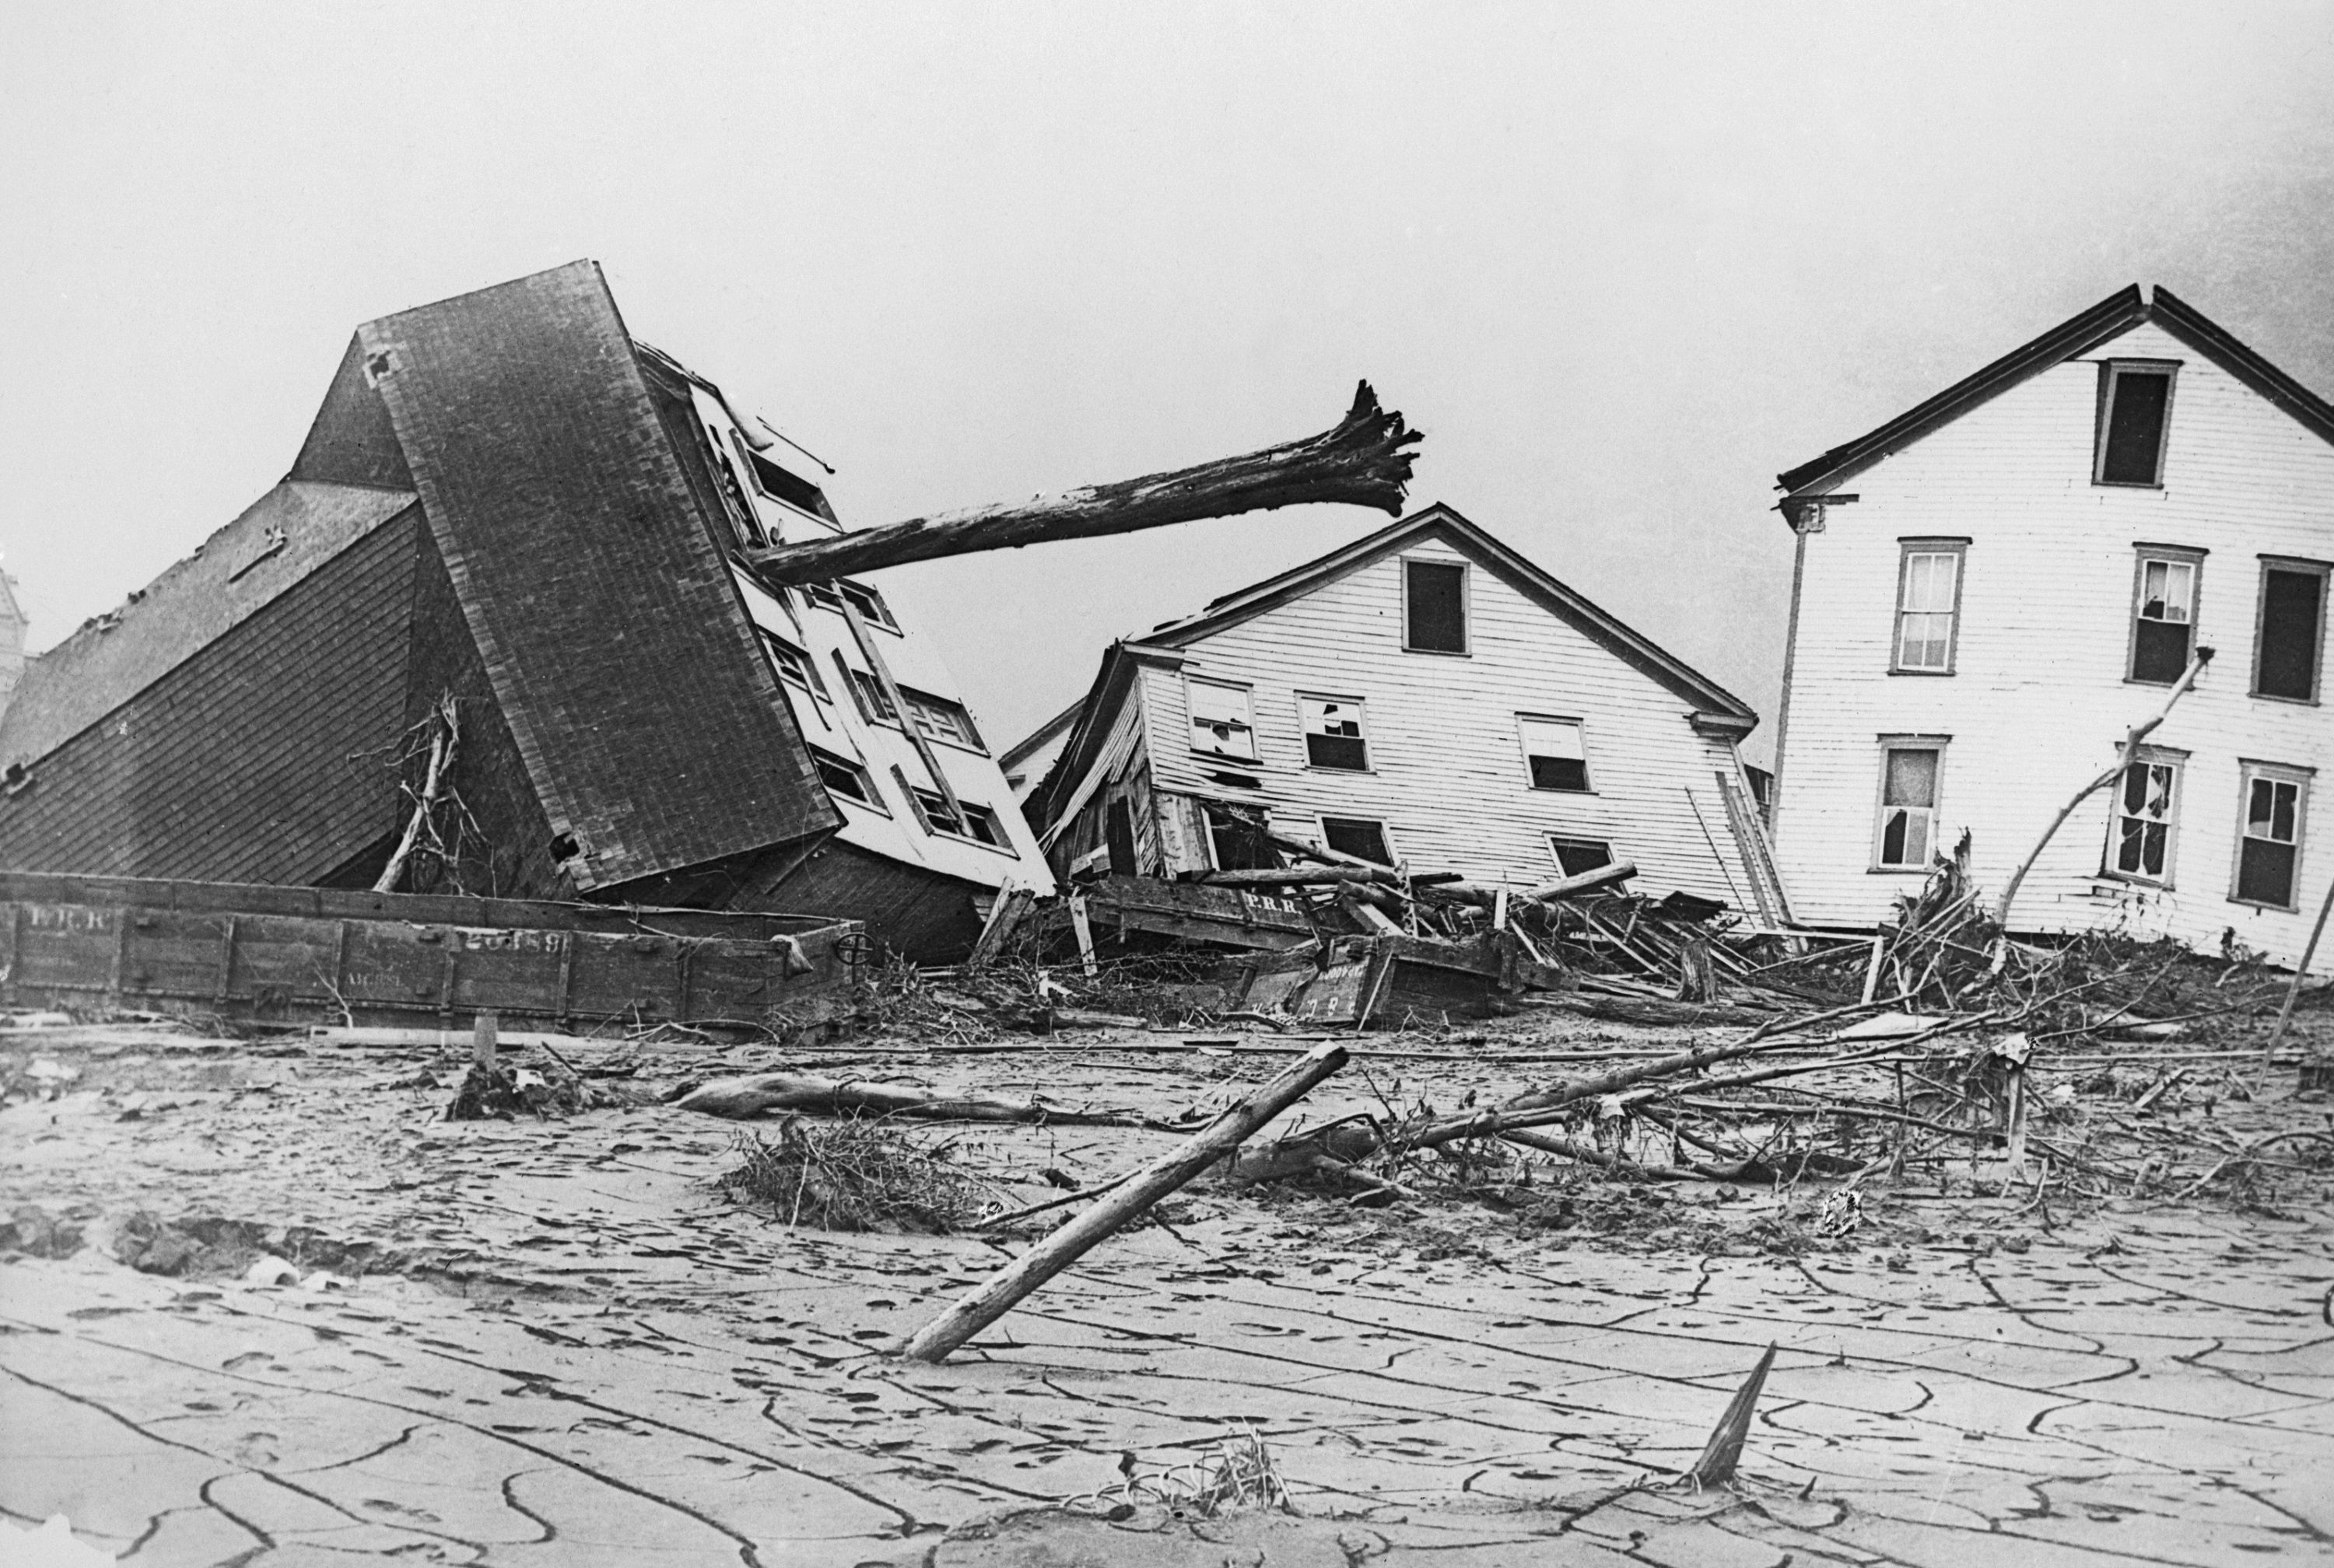 Photograph of houses damaged in the Johnstown Flood.